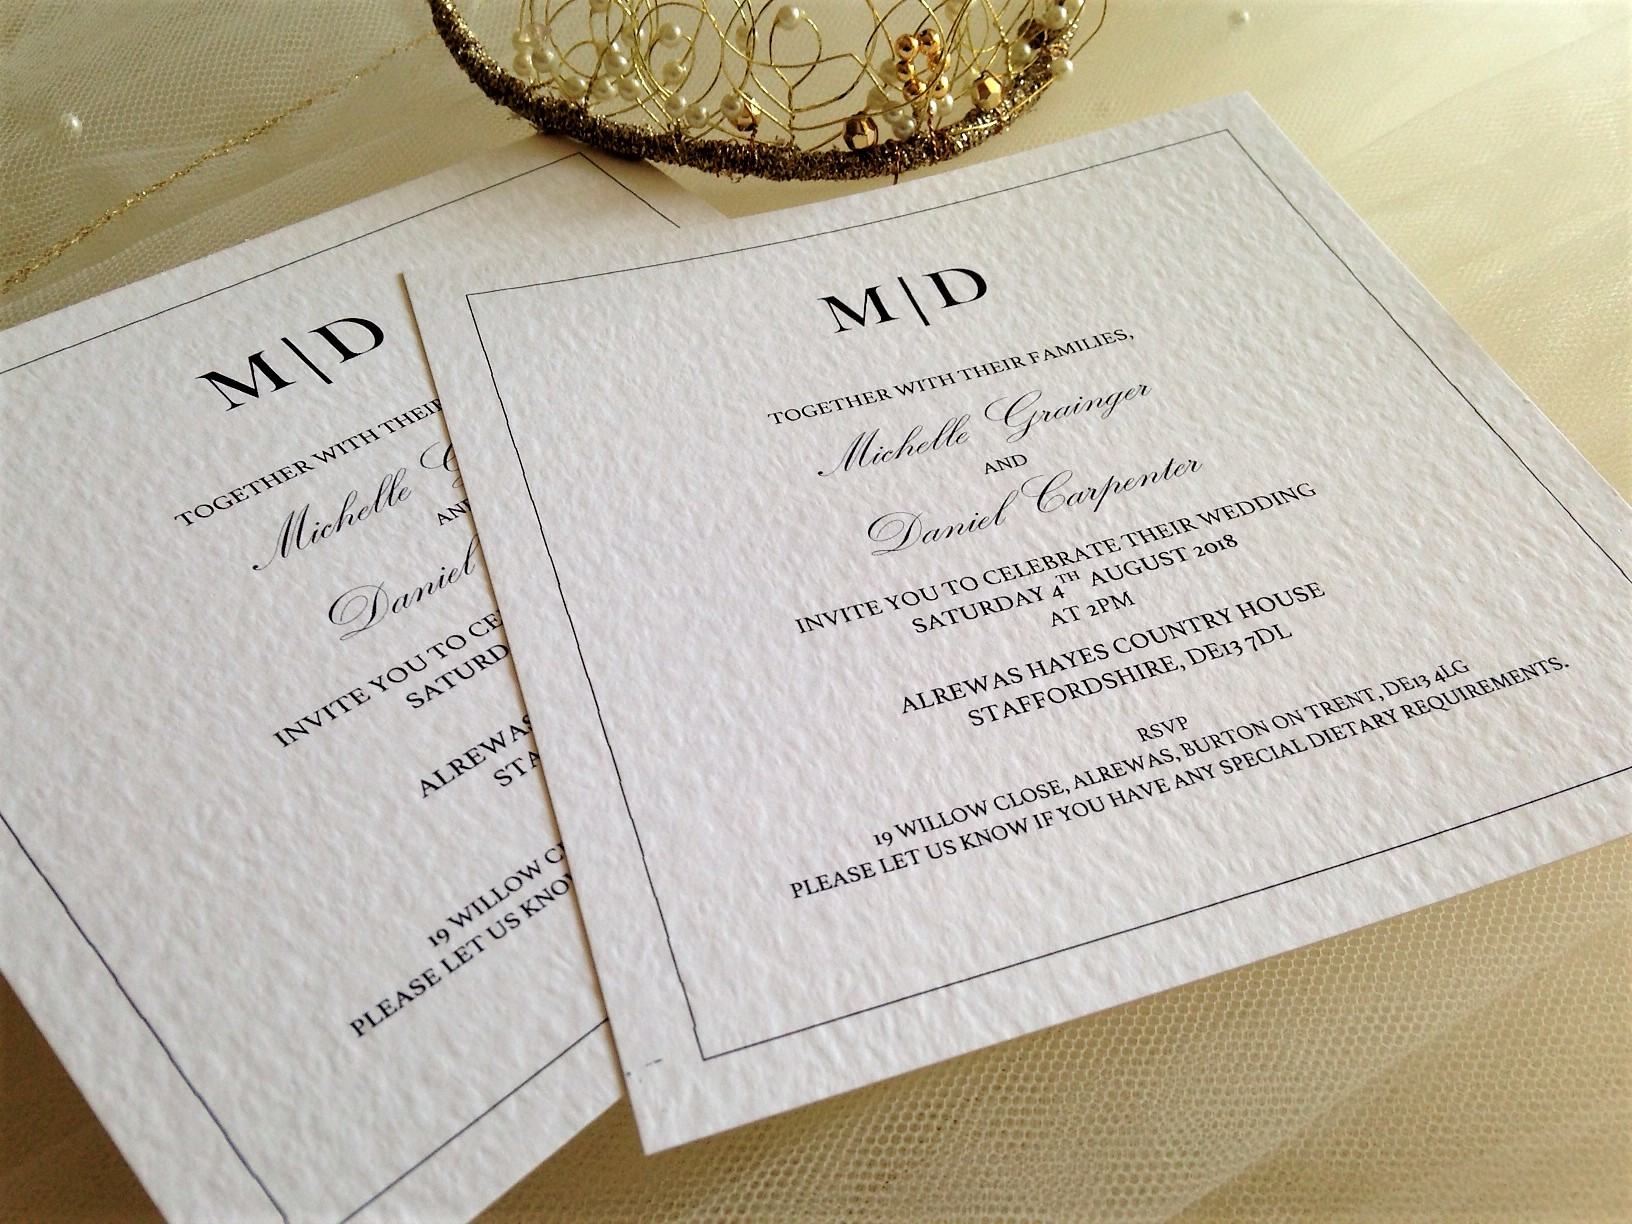 Wedding Invitation Wording - Formal and Informal Wording - Daisy ...